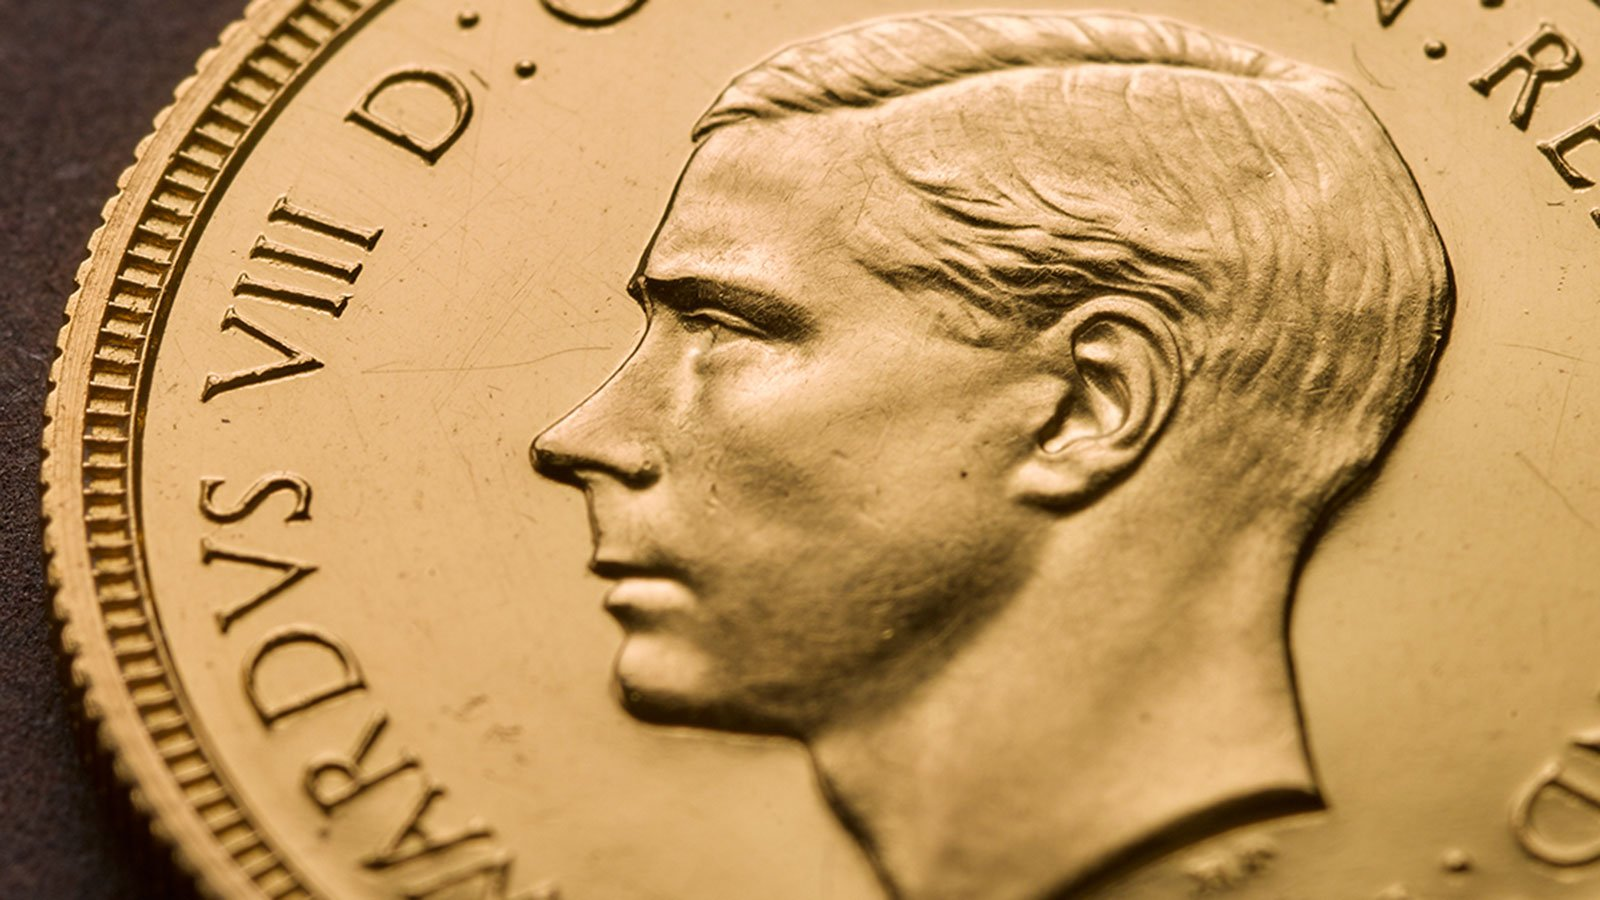 Rare coin sold for record $1.3 million U.S.D. (Credit: The Royal Mint)